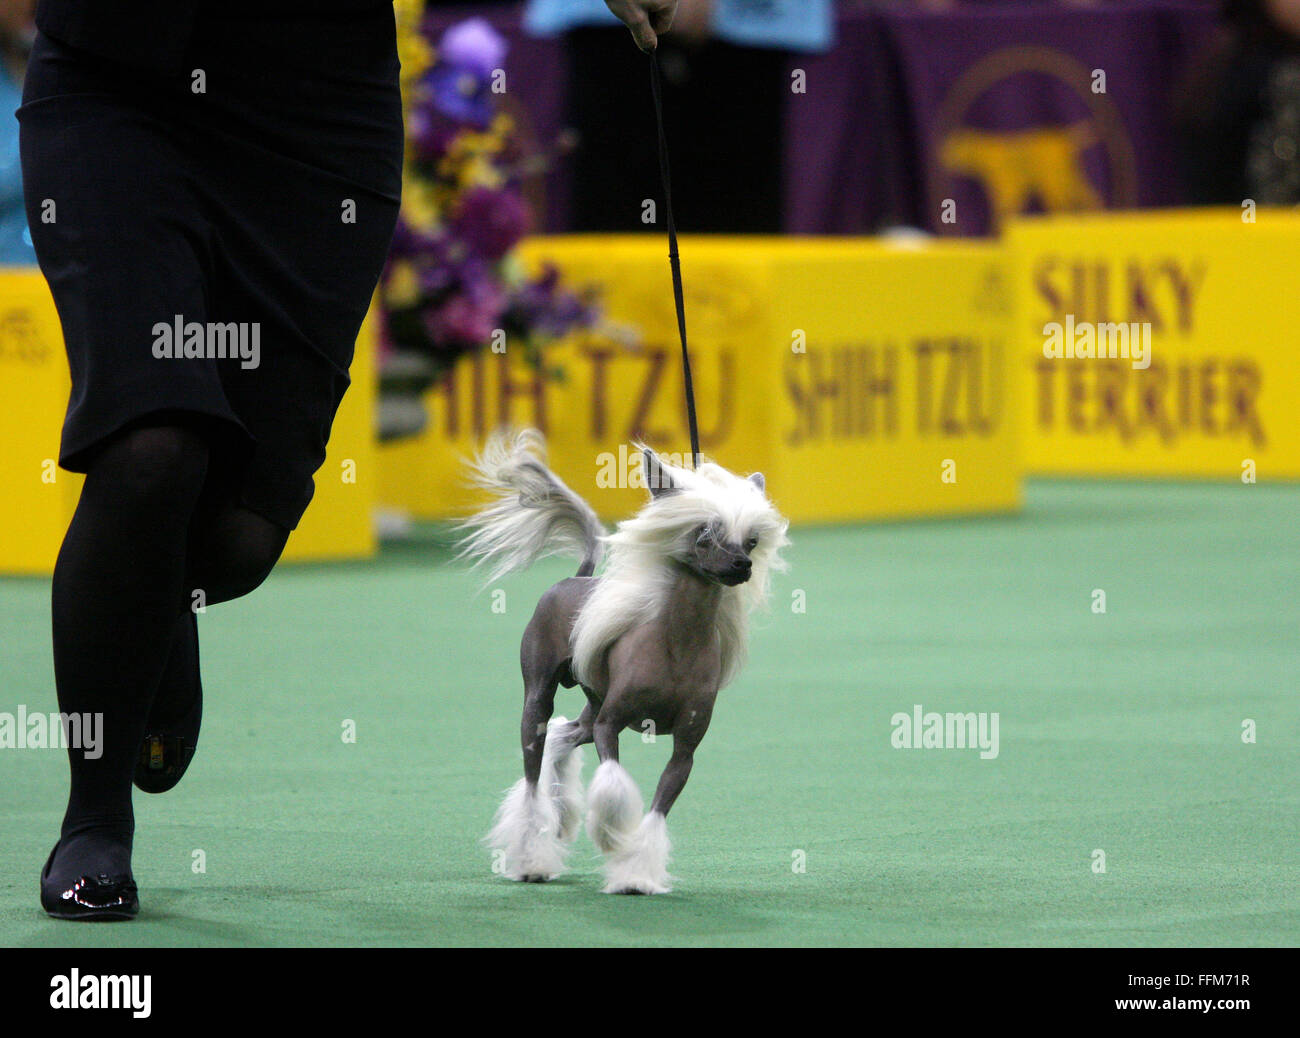 Chinese Crested Dog Show Stock Photos & Chinese Crested Dog Show ...